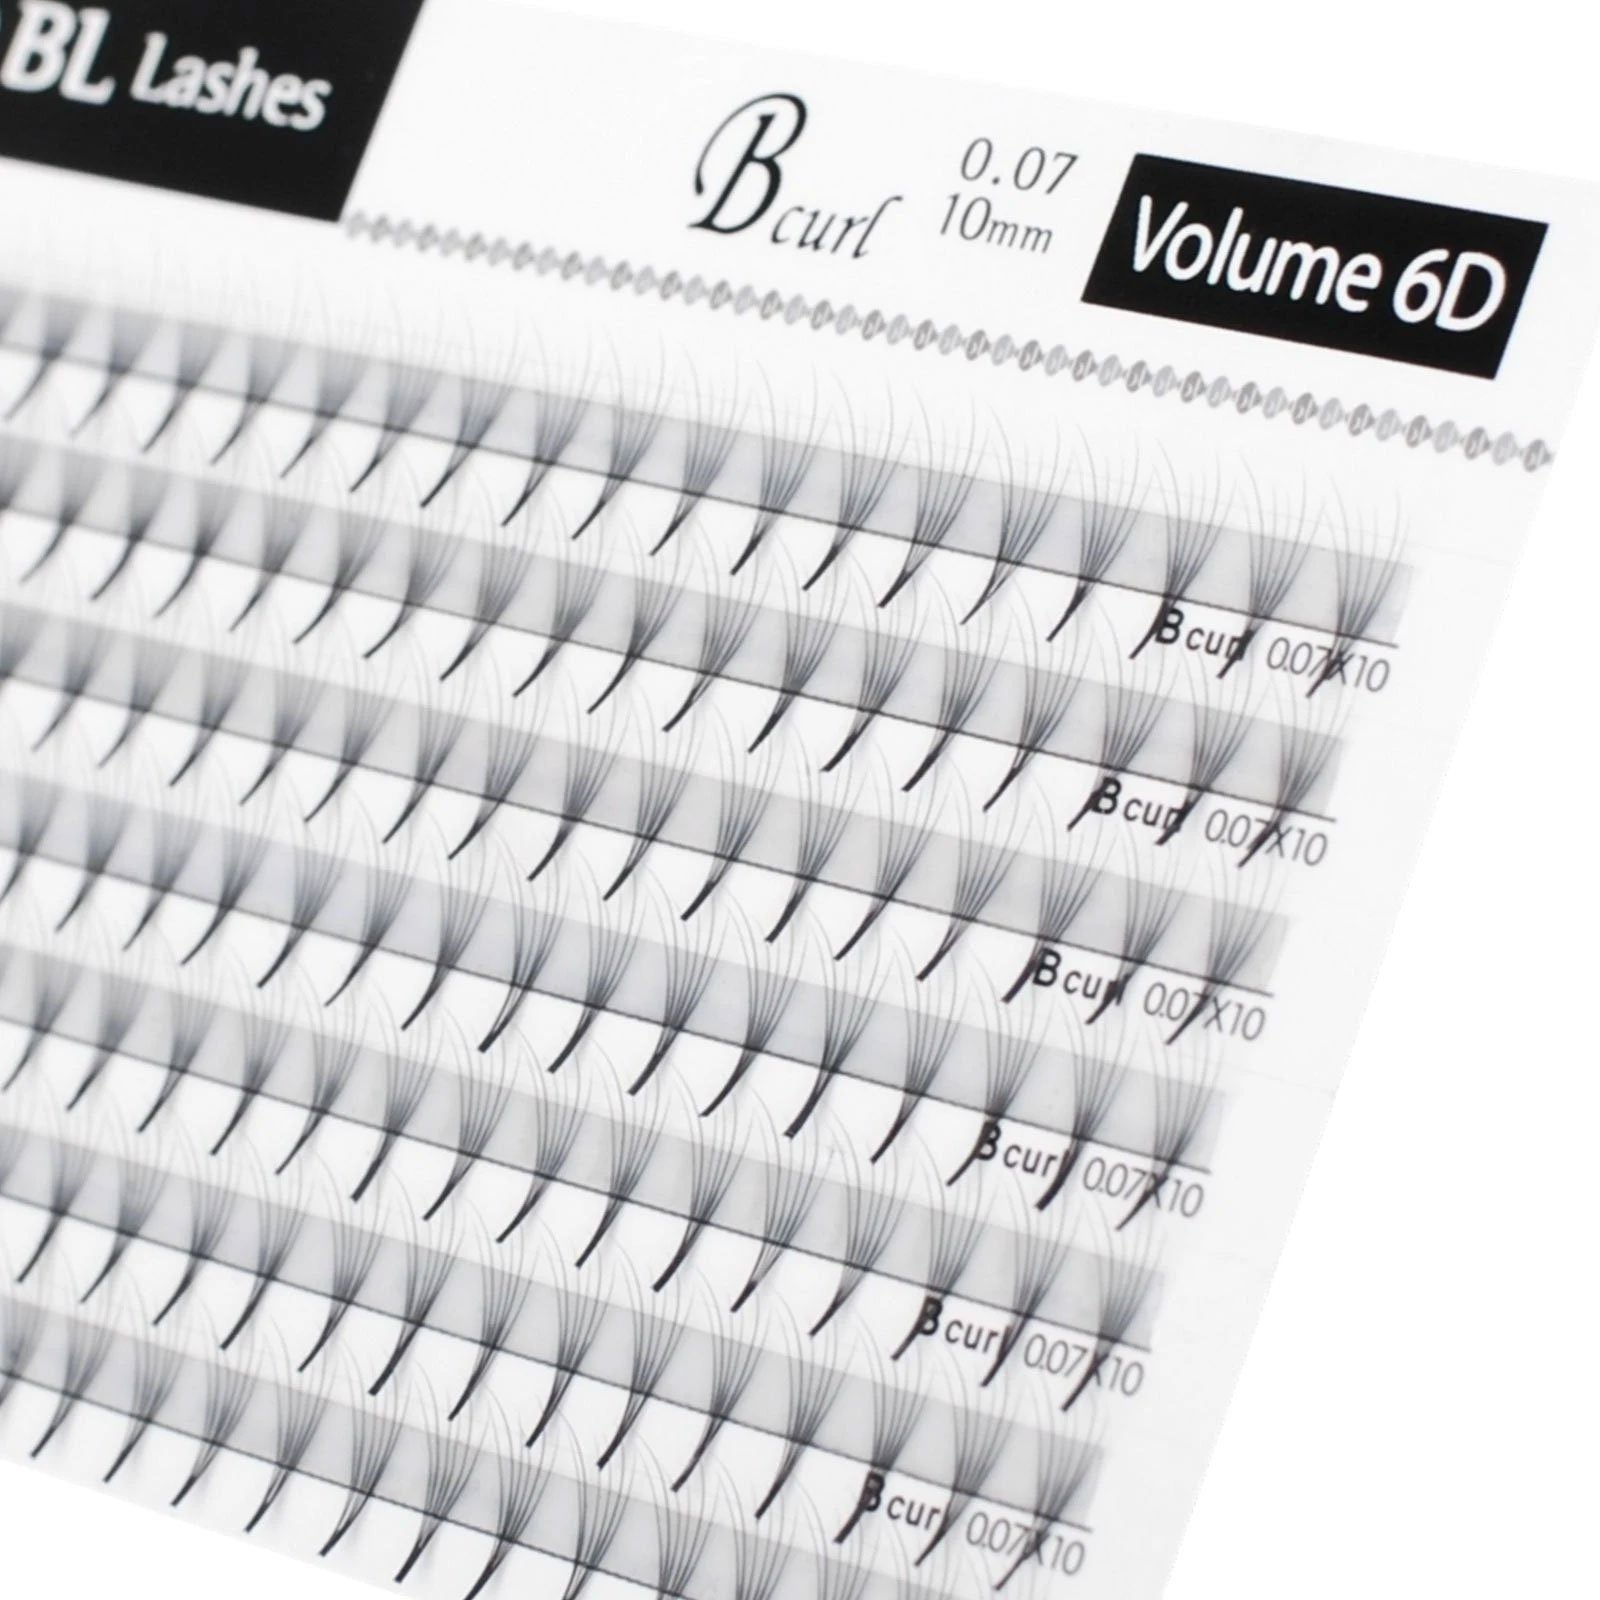 BL Blink Pre-made Fans - Eyelash Extension Supplies and Wholesale